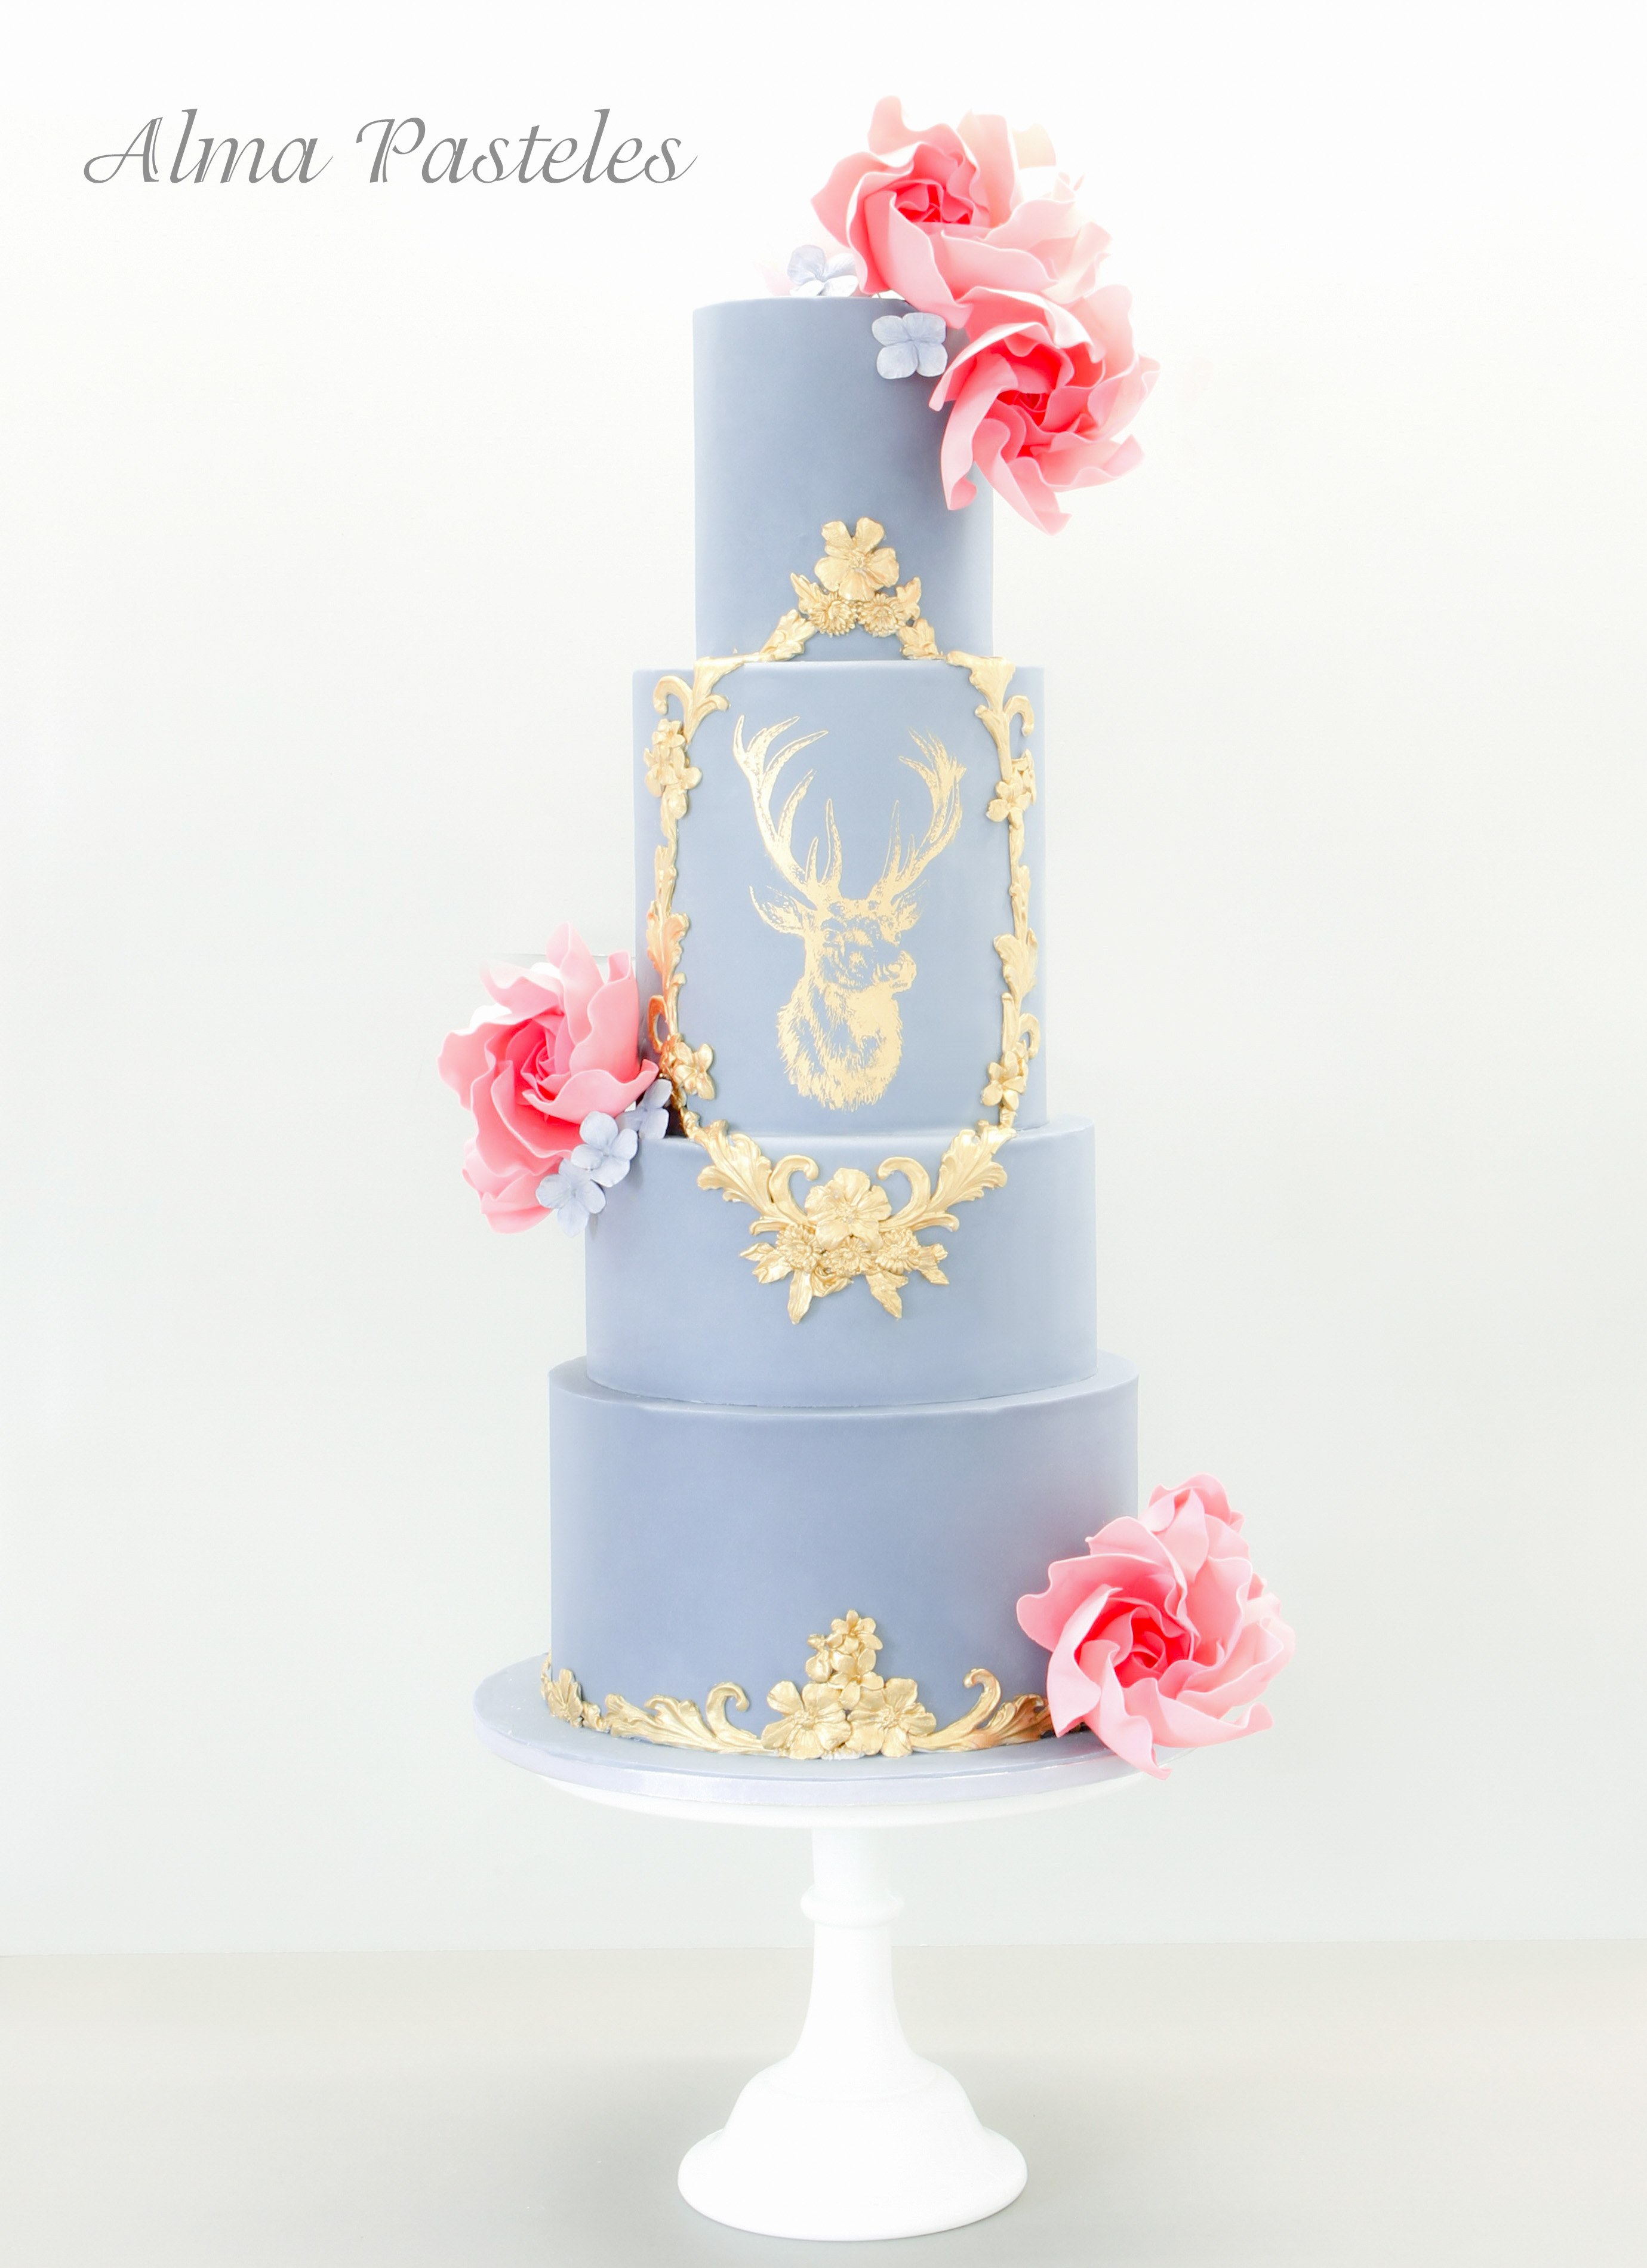 Baby blue and gold victorian wedding cake with sugar flowers